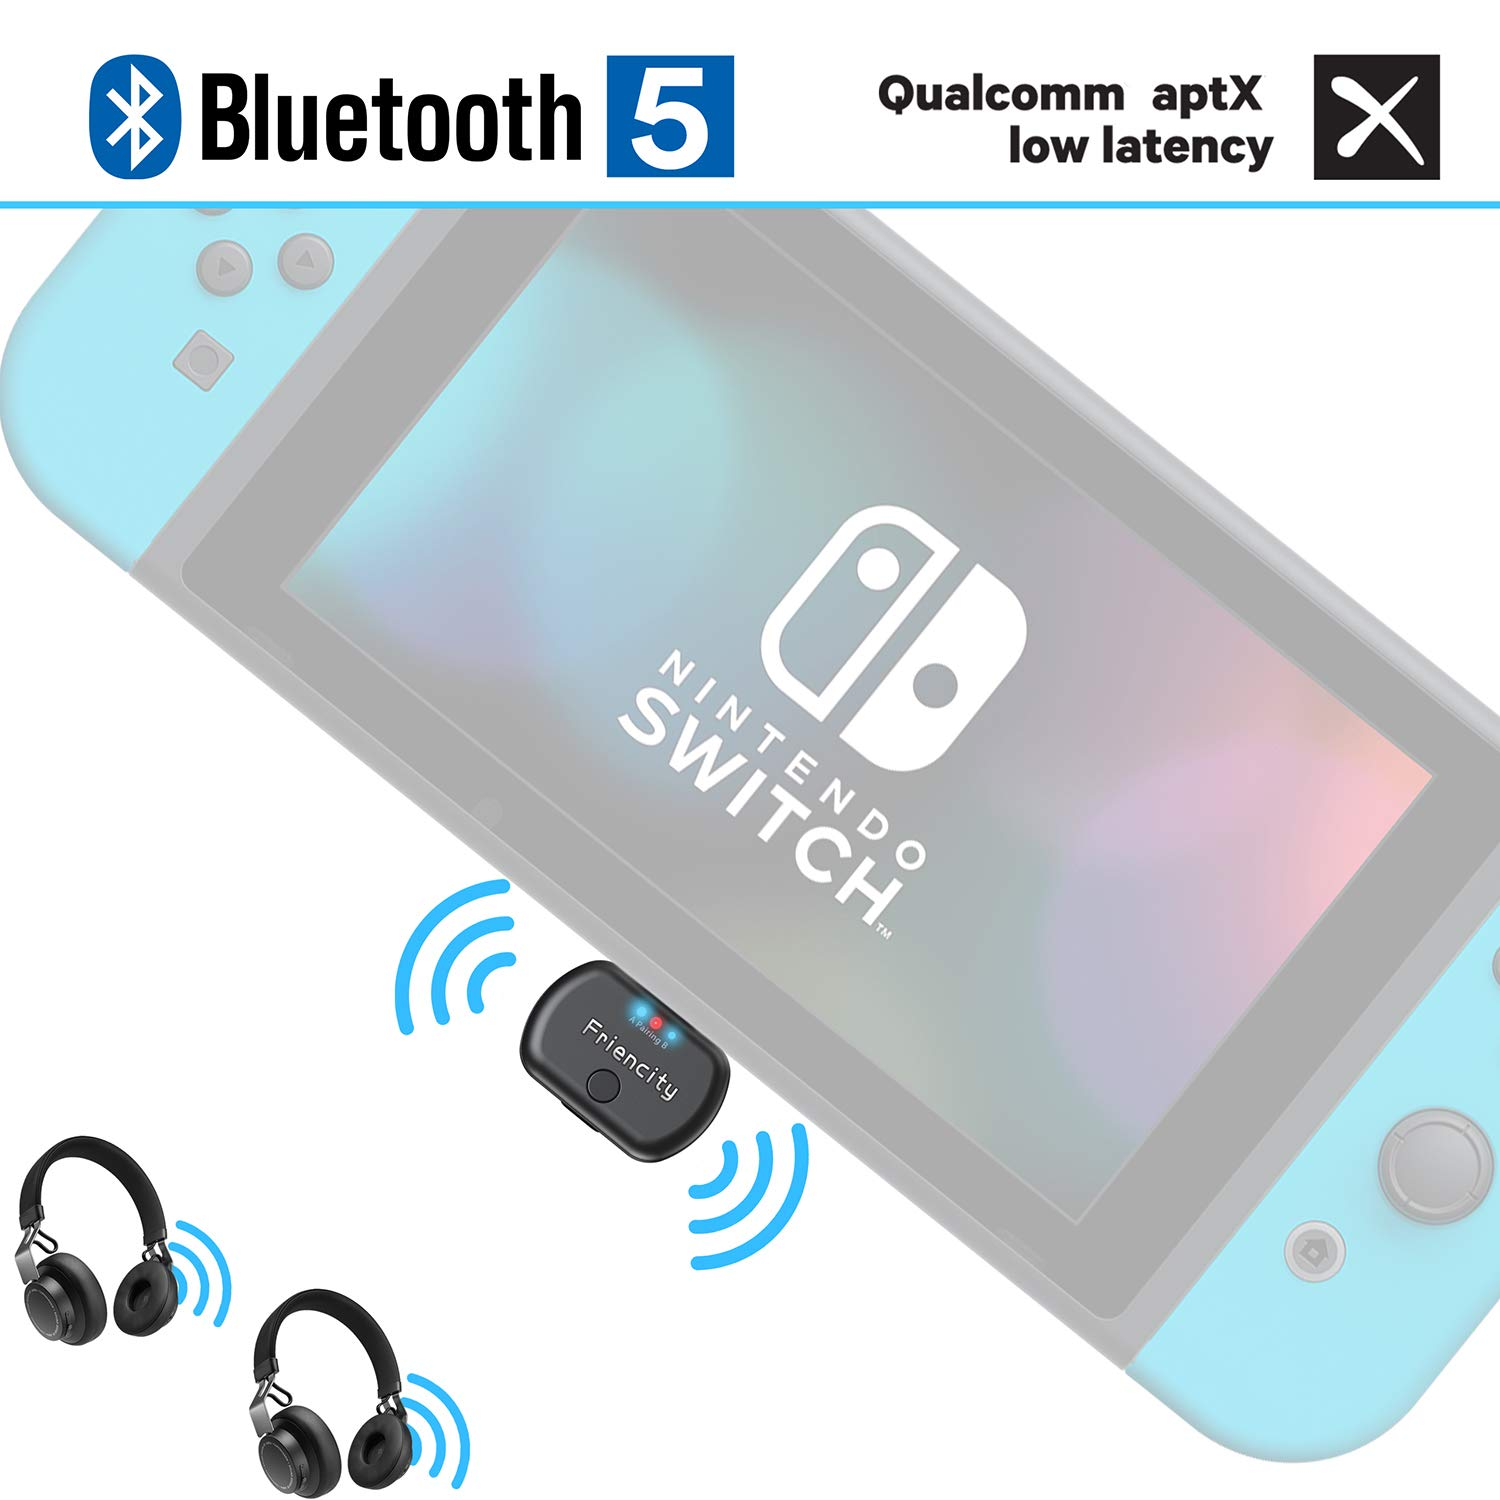 Friencity Bluetooth Audio Transmitter Adapter for Nintendo Switch PC PS4, USB C Connector Wireless Dongle Adapter Pair to Bluetooth Headphone/Speaker, in-Game Voice Chat, Dual Link aptX LL,Plug&Play by Friencity